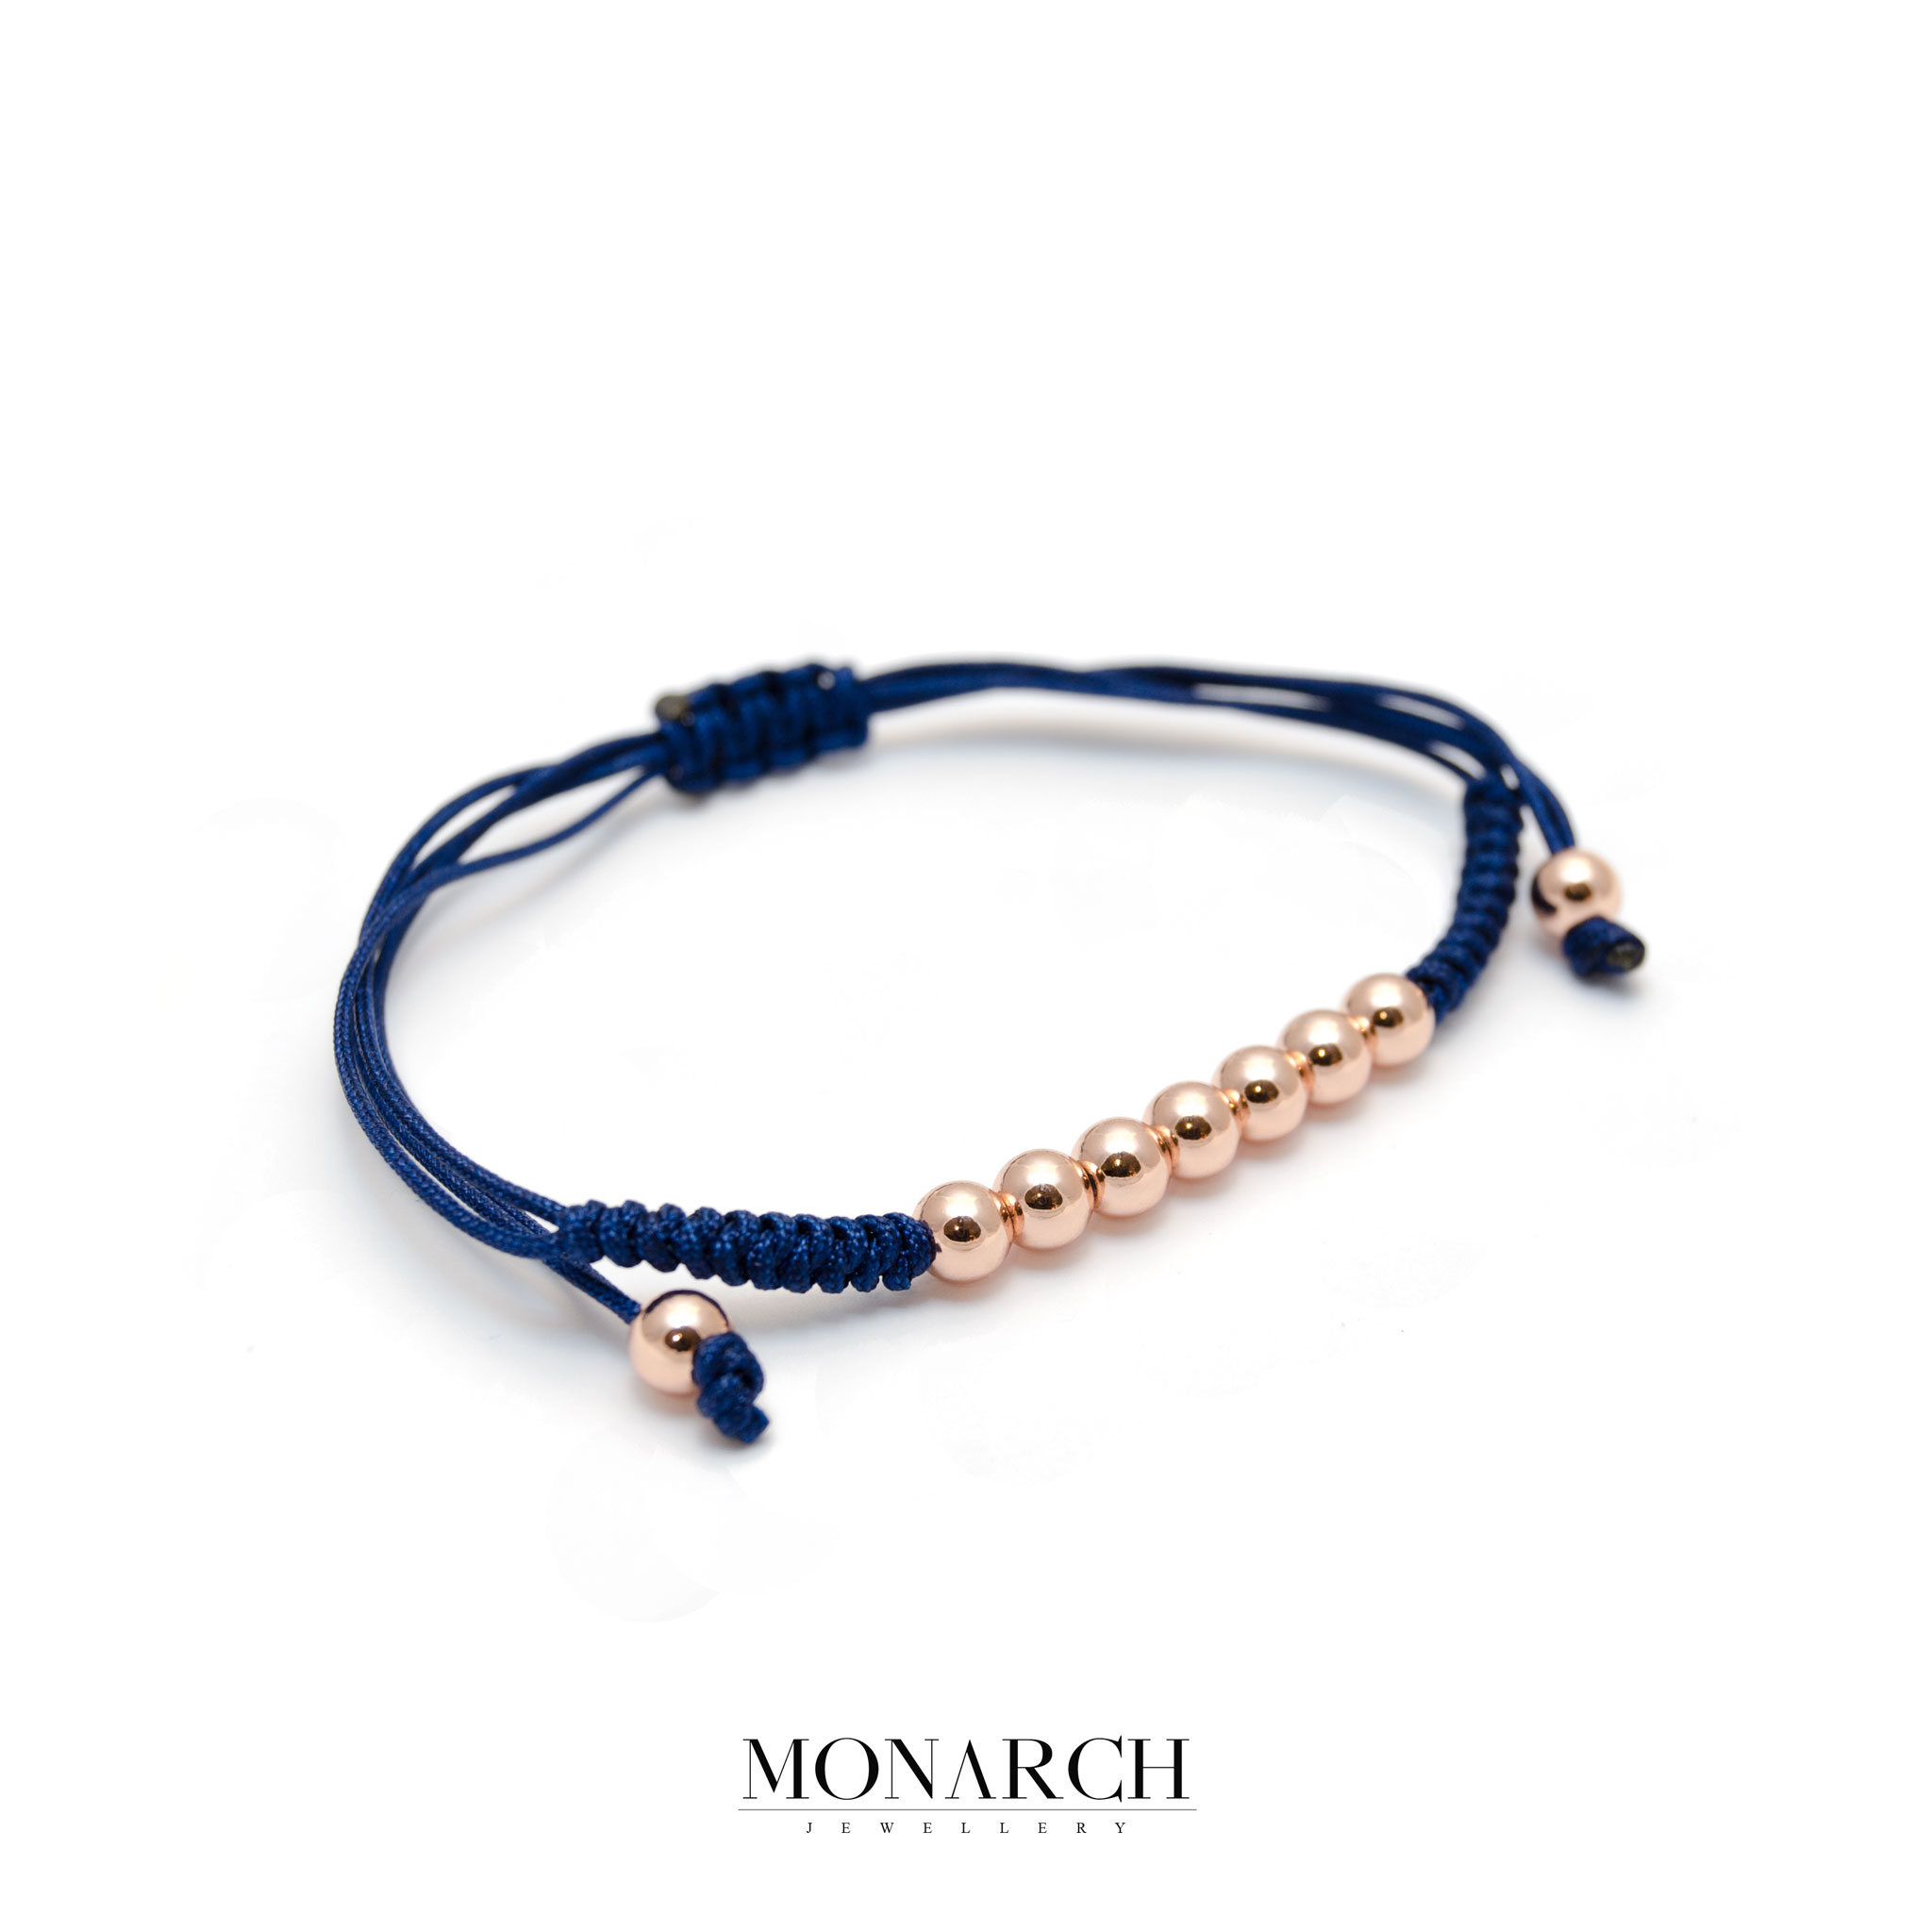 Monarch Jewellery Gold Rose Bead Azur Macrame Bracelet